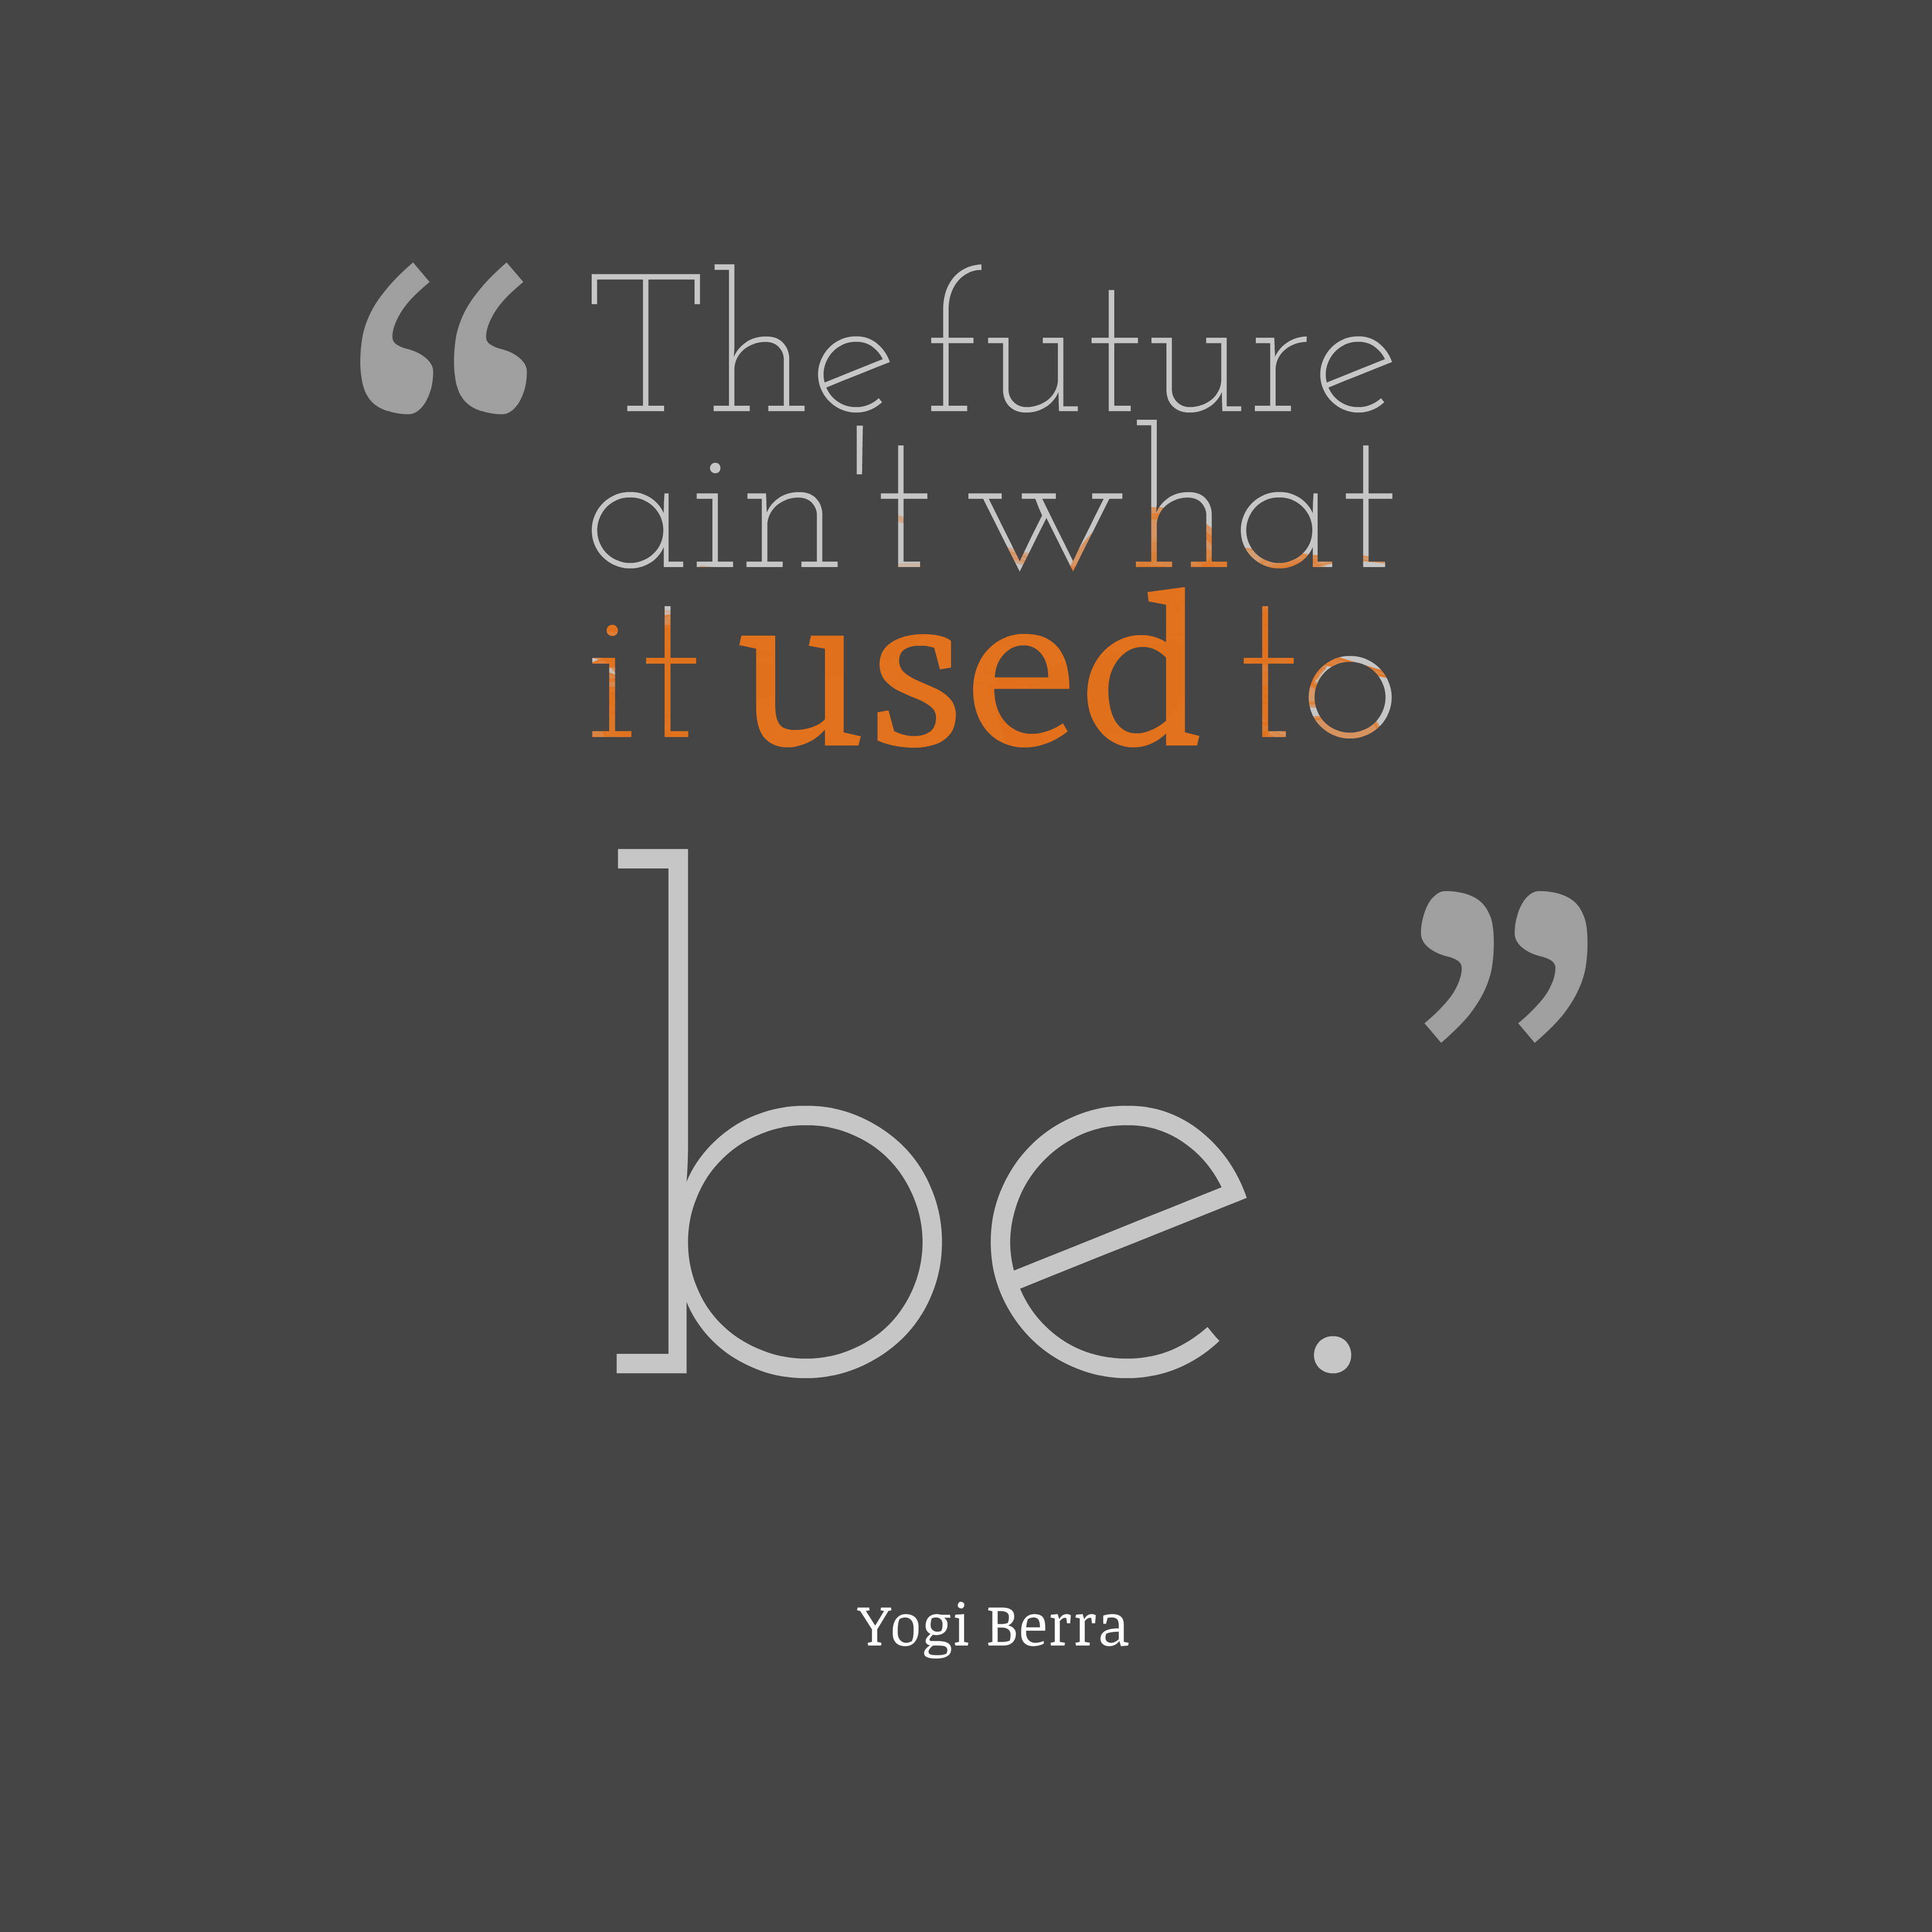 The-future-aint-what-it-quotes-Yogi-Berra